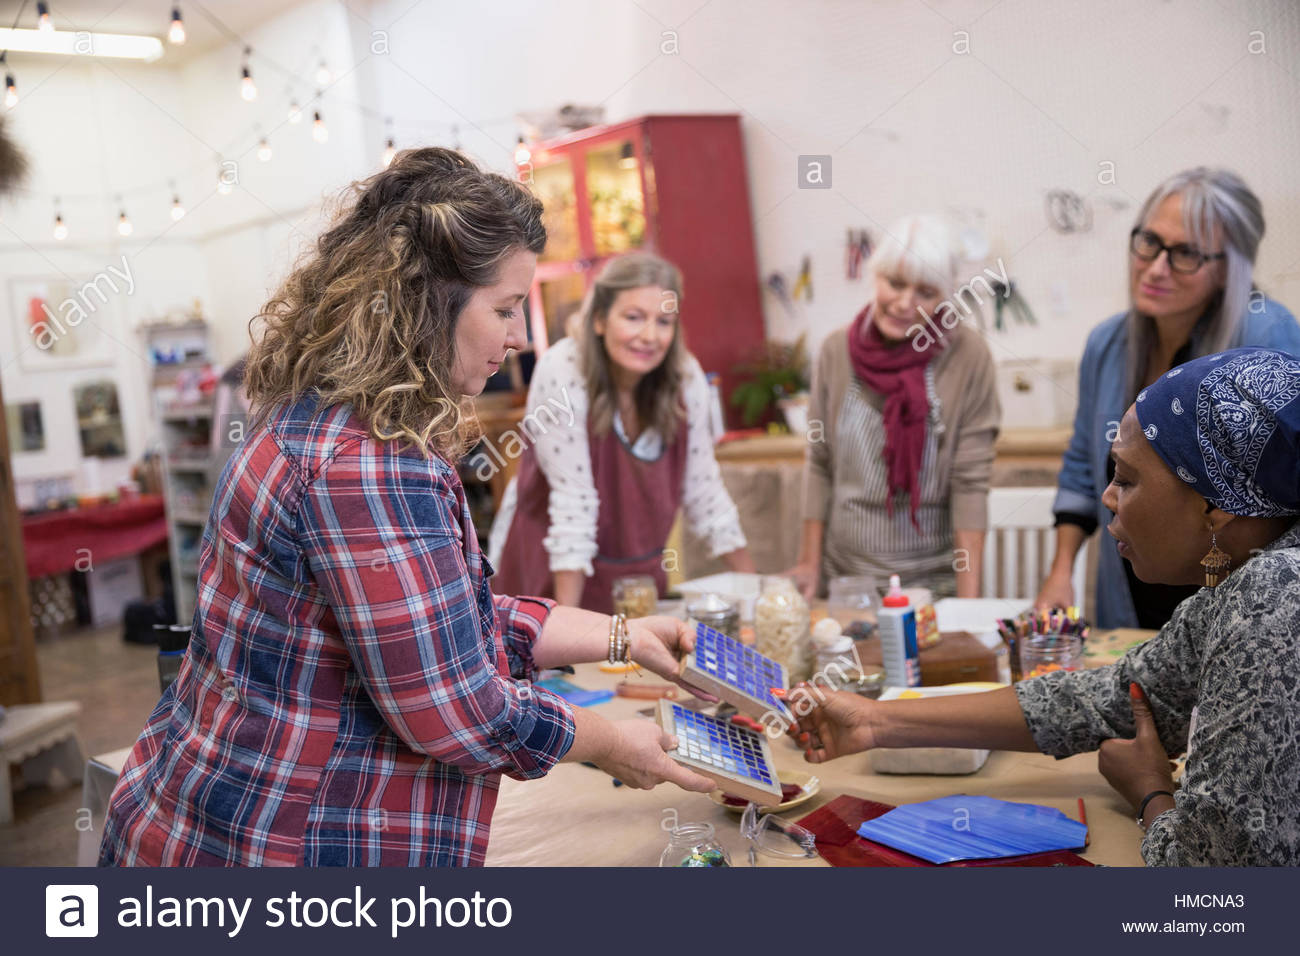 Instructor teaching women in mosaic art and craft class - Stock Image